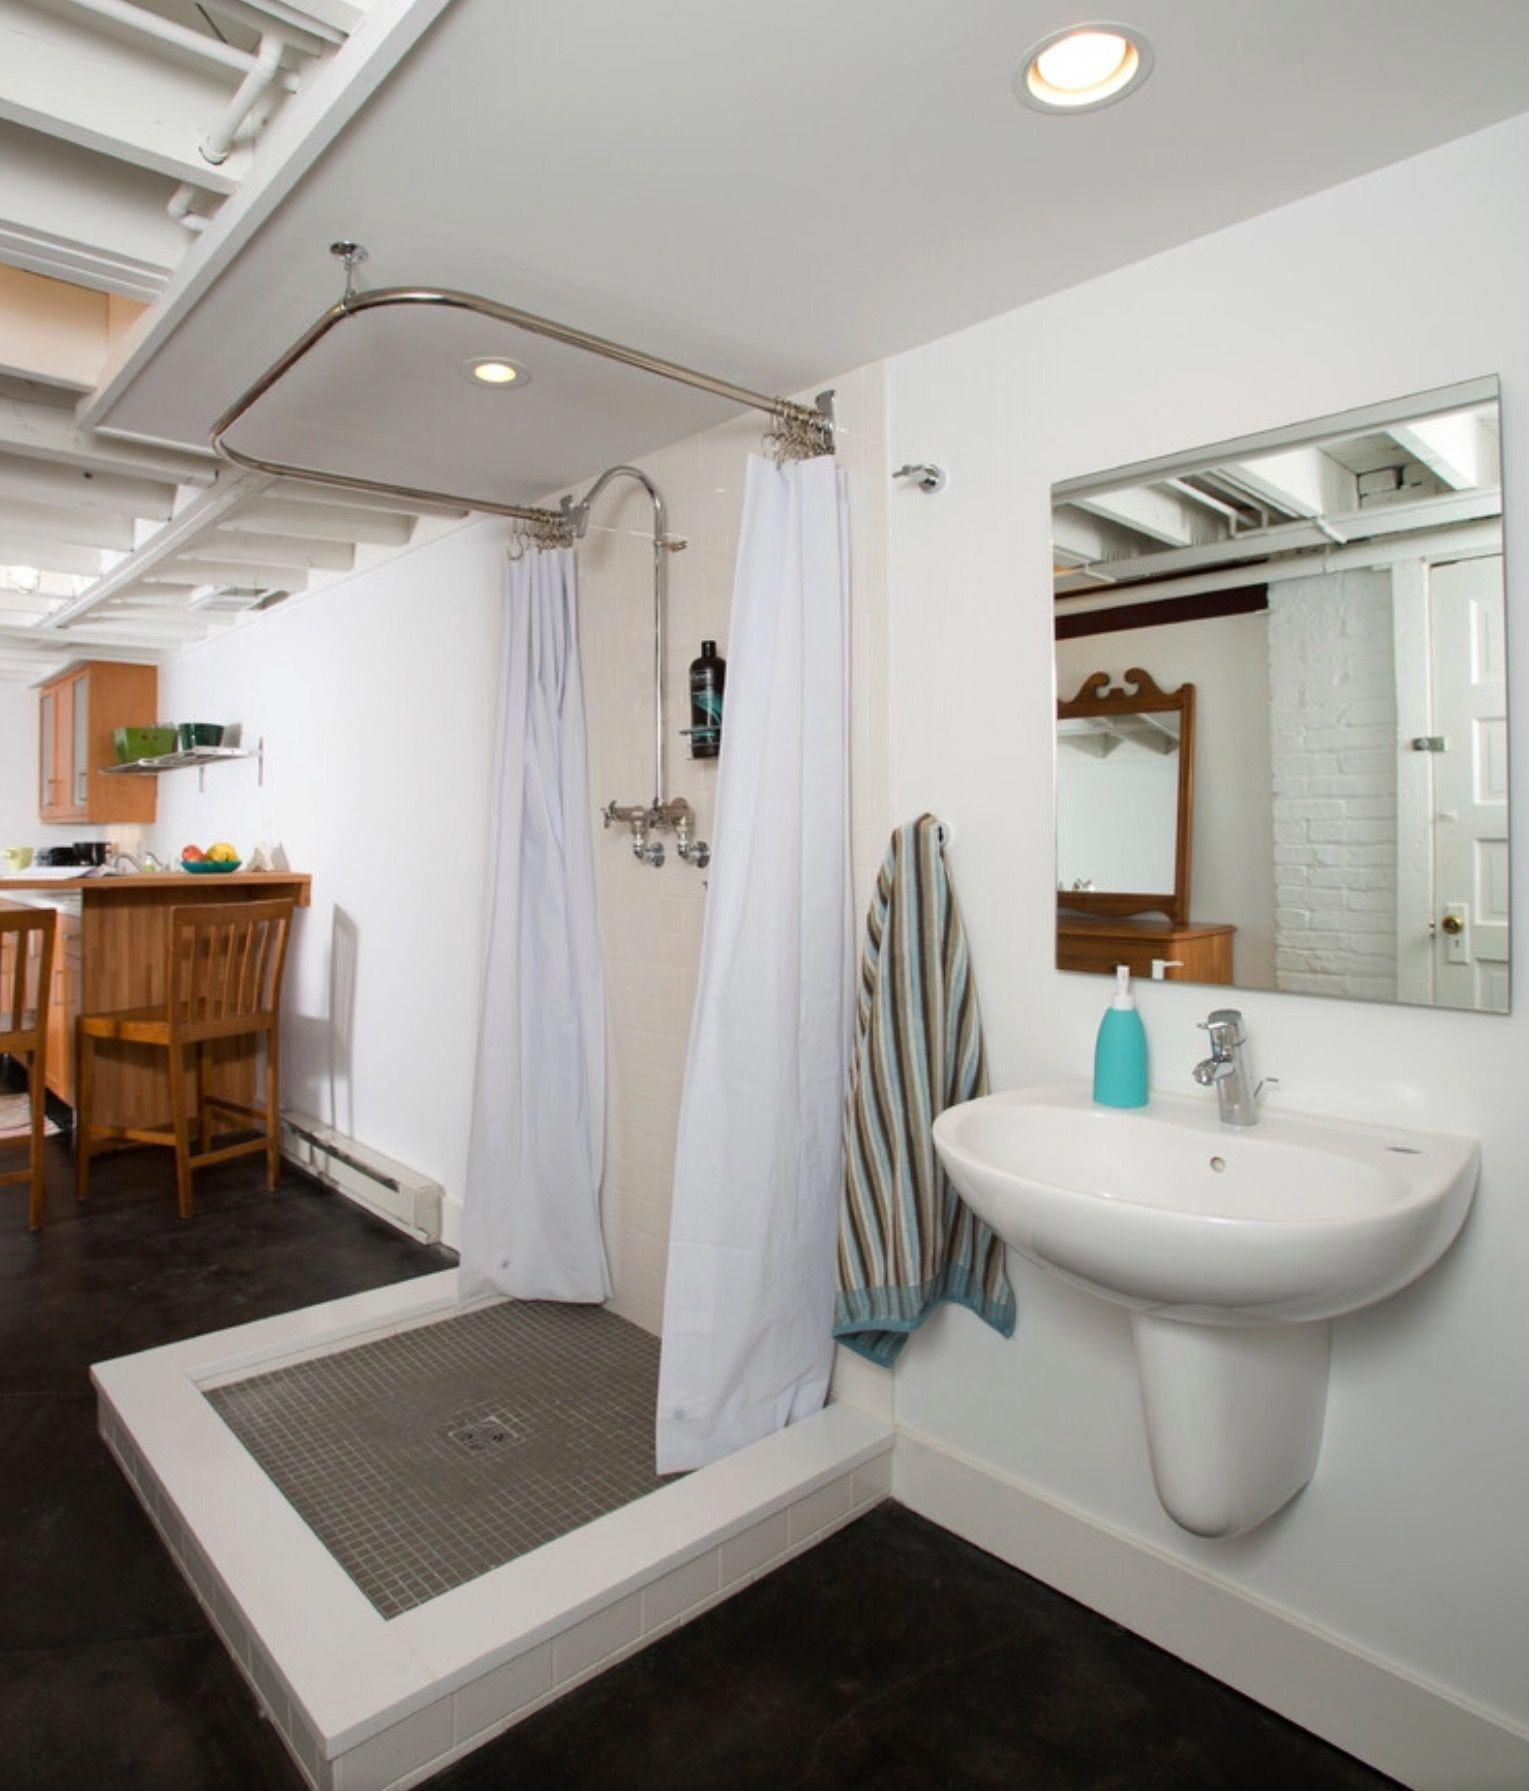 Renovating The Basement Of Your Home What To Watch For Basement Bathroom Design Basement Remodeling Basement Bathroom Remodeling